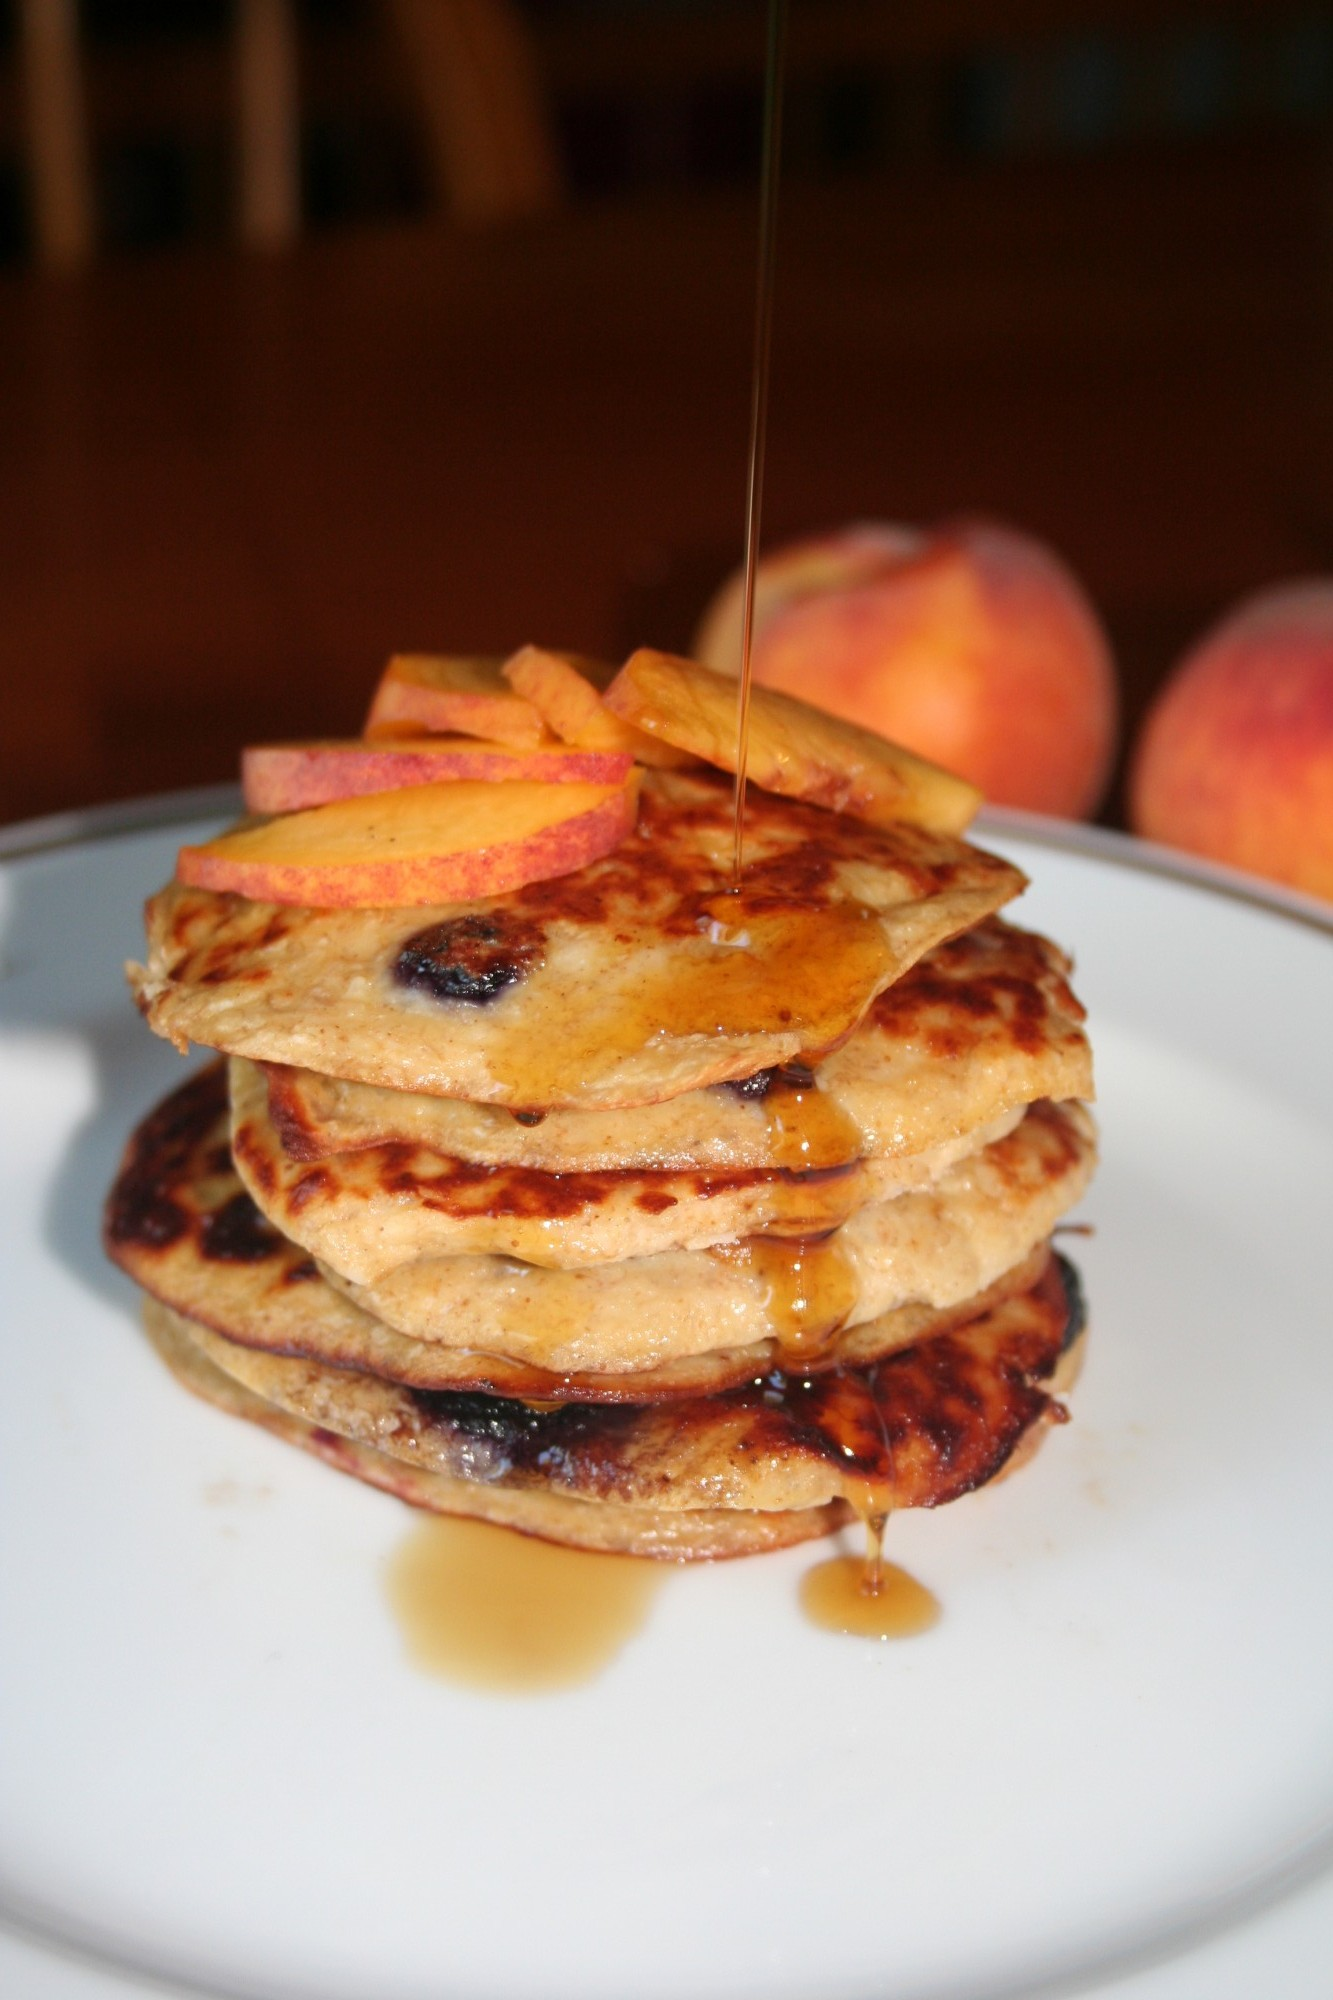 Amazingly healthy banana pancakes